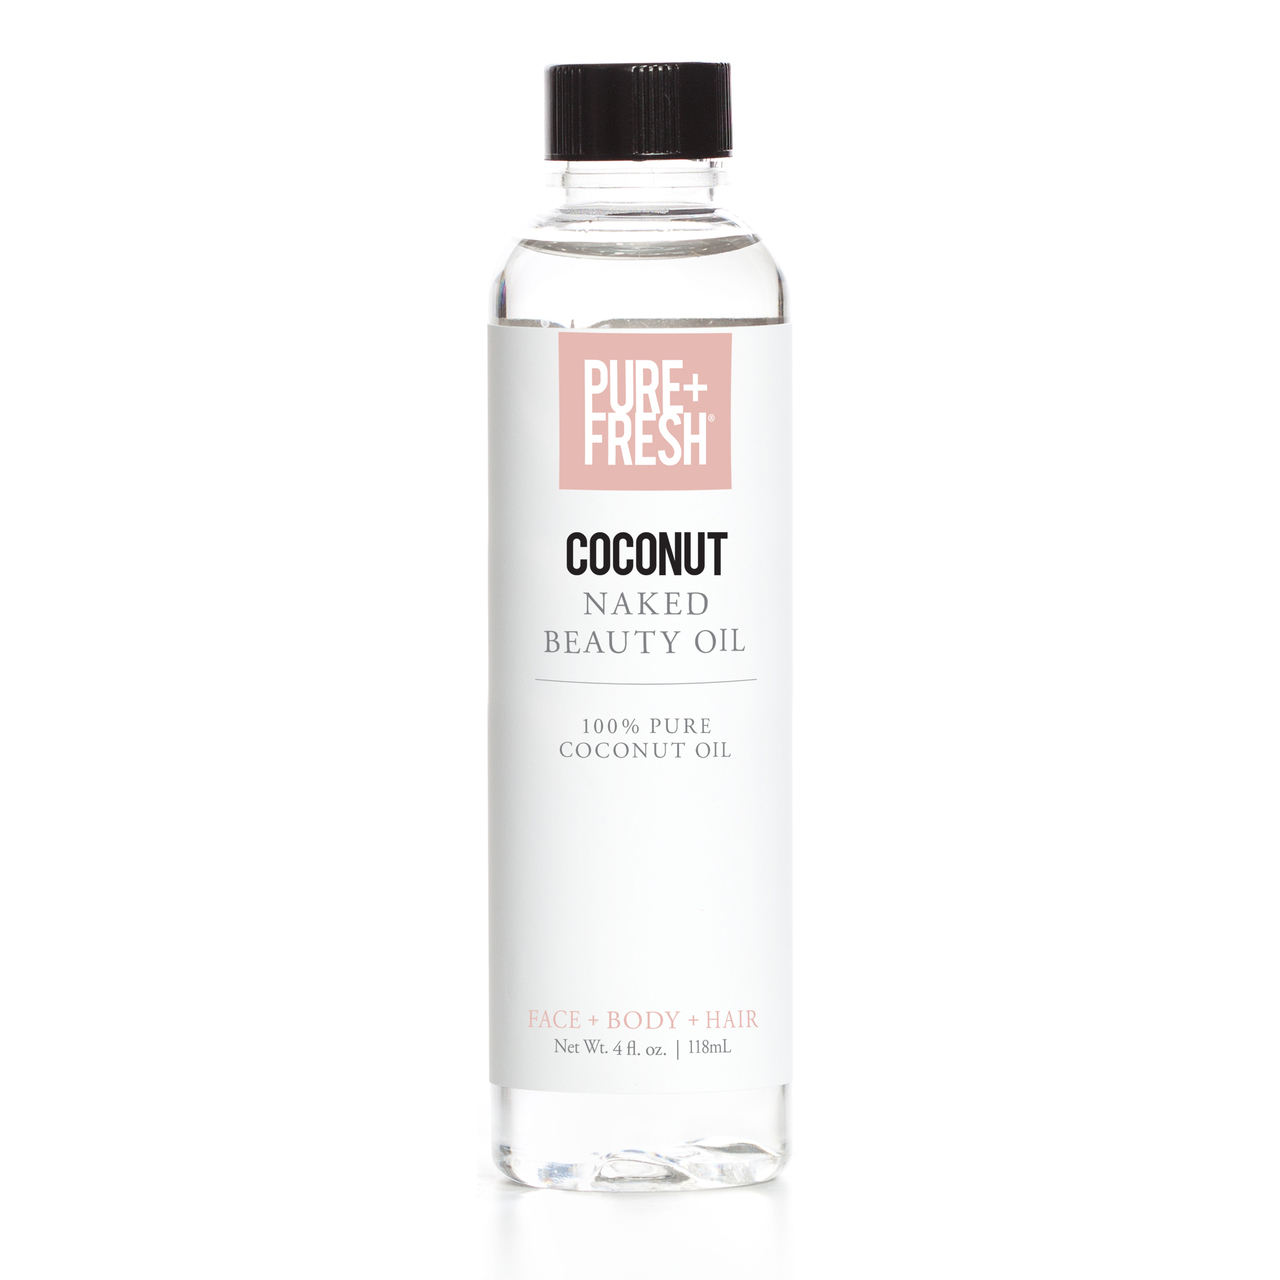 Pure+Fresh Naked Oil - Coconut Oil - 2oz